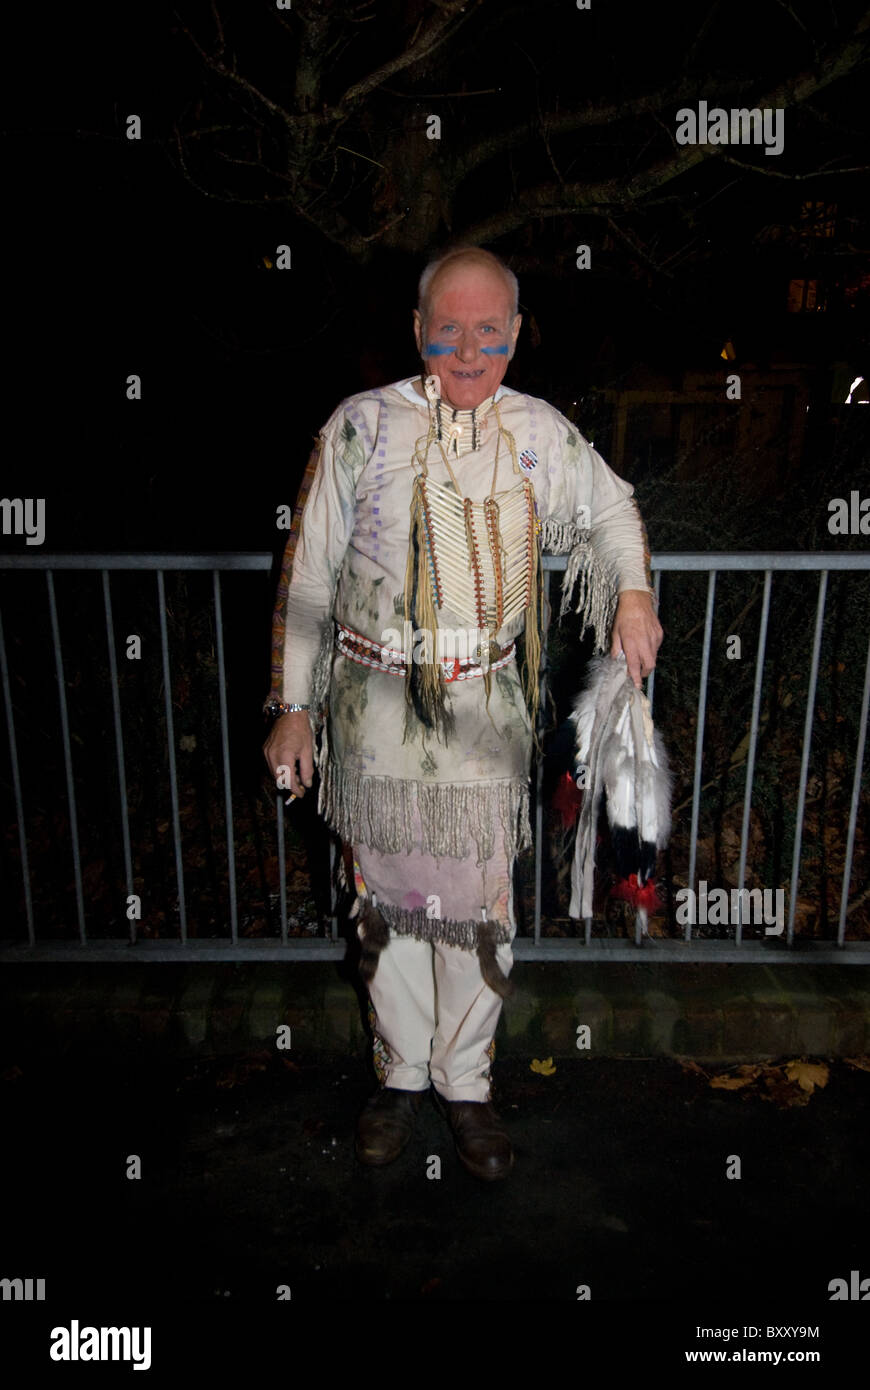 Man in Indian costume for Lewes Bonfire night - Stock Image